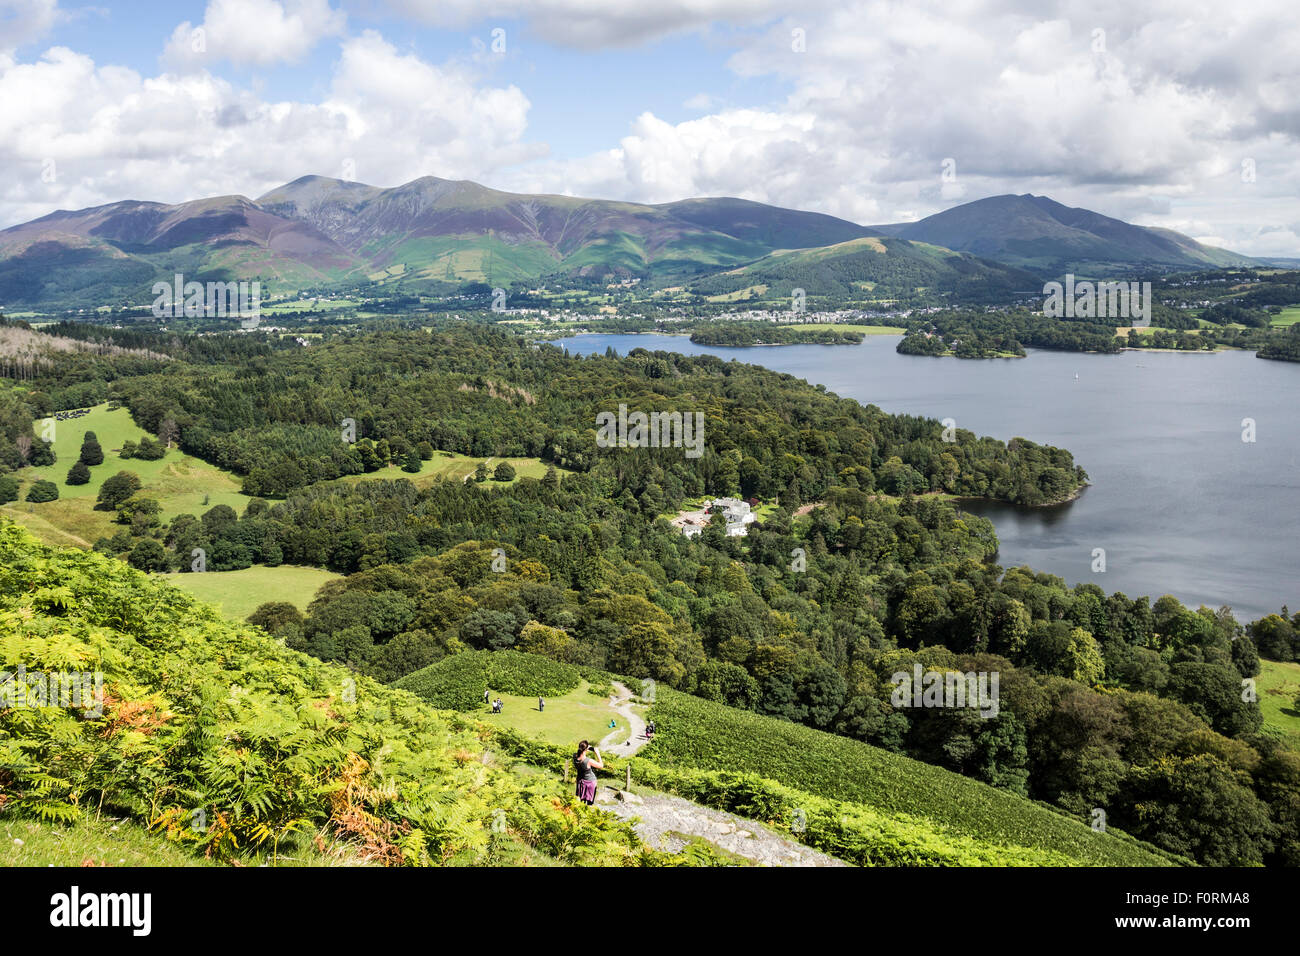 Skiddaw and Blencathra from the Lowers Slopes of Catbells, Lake District, Cumbria UK - Stock Image